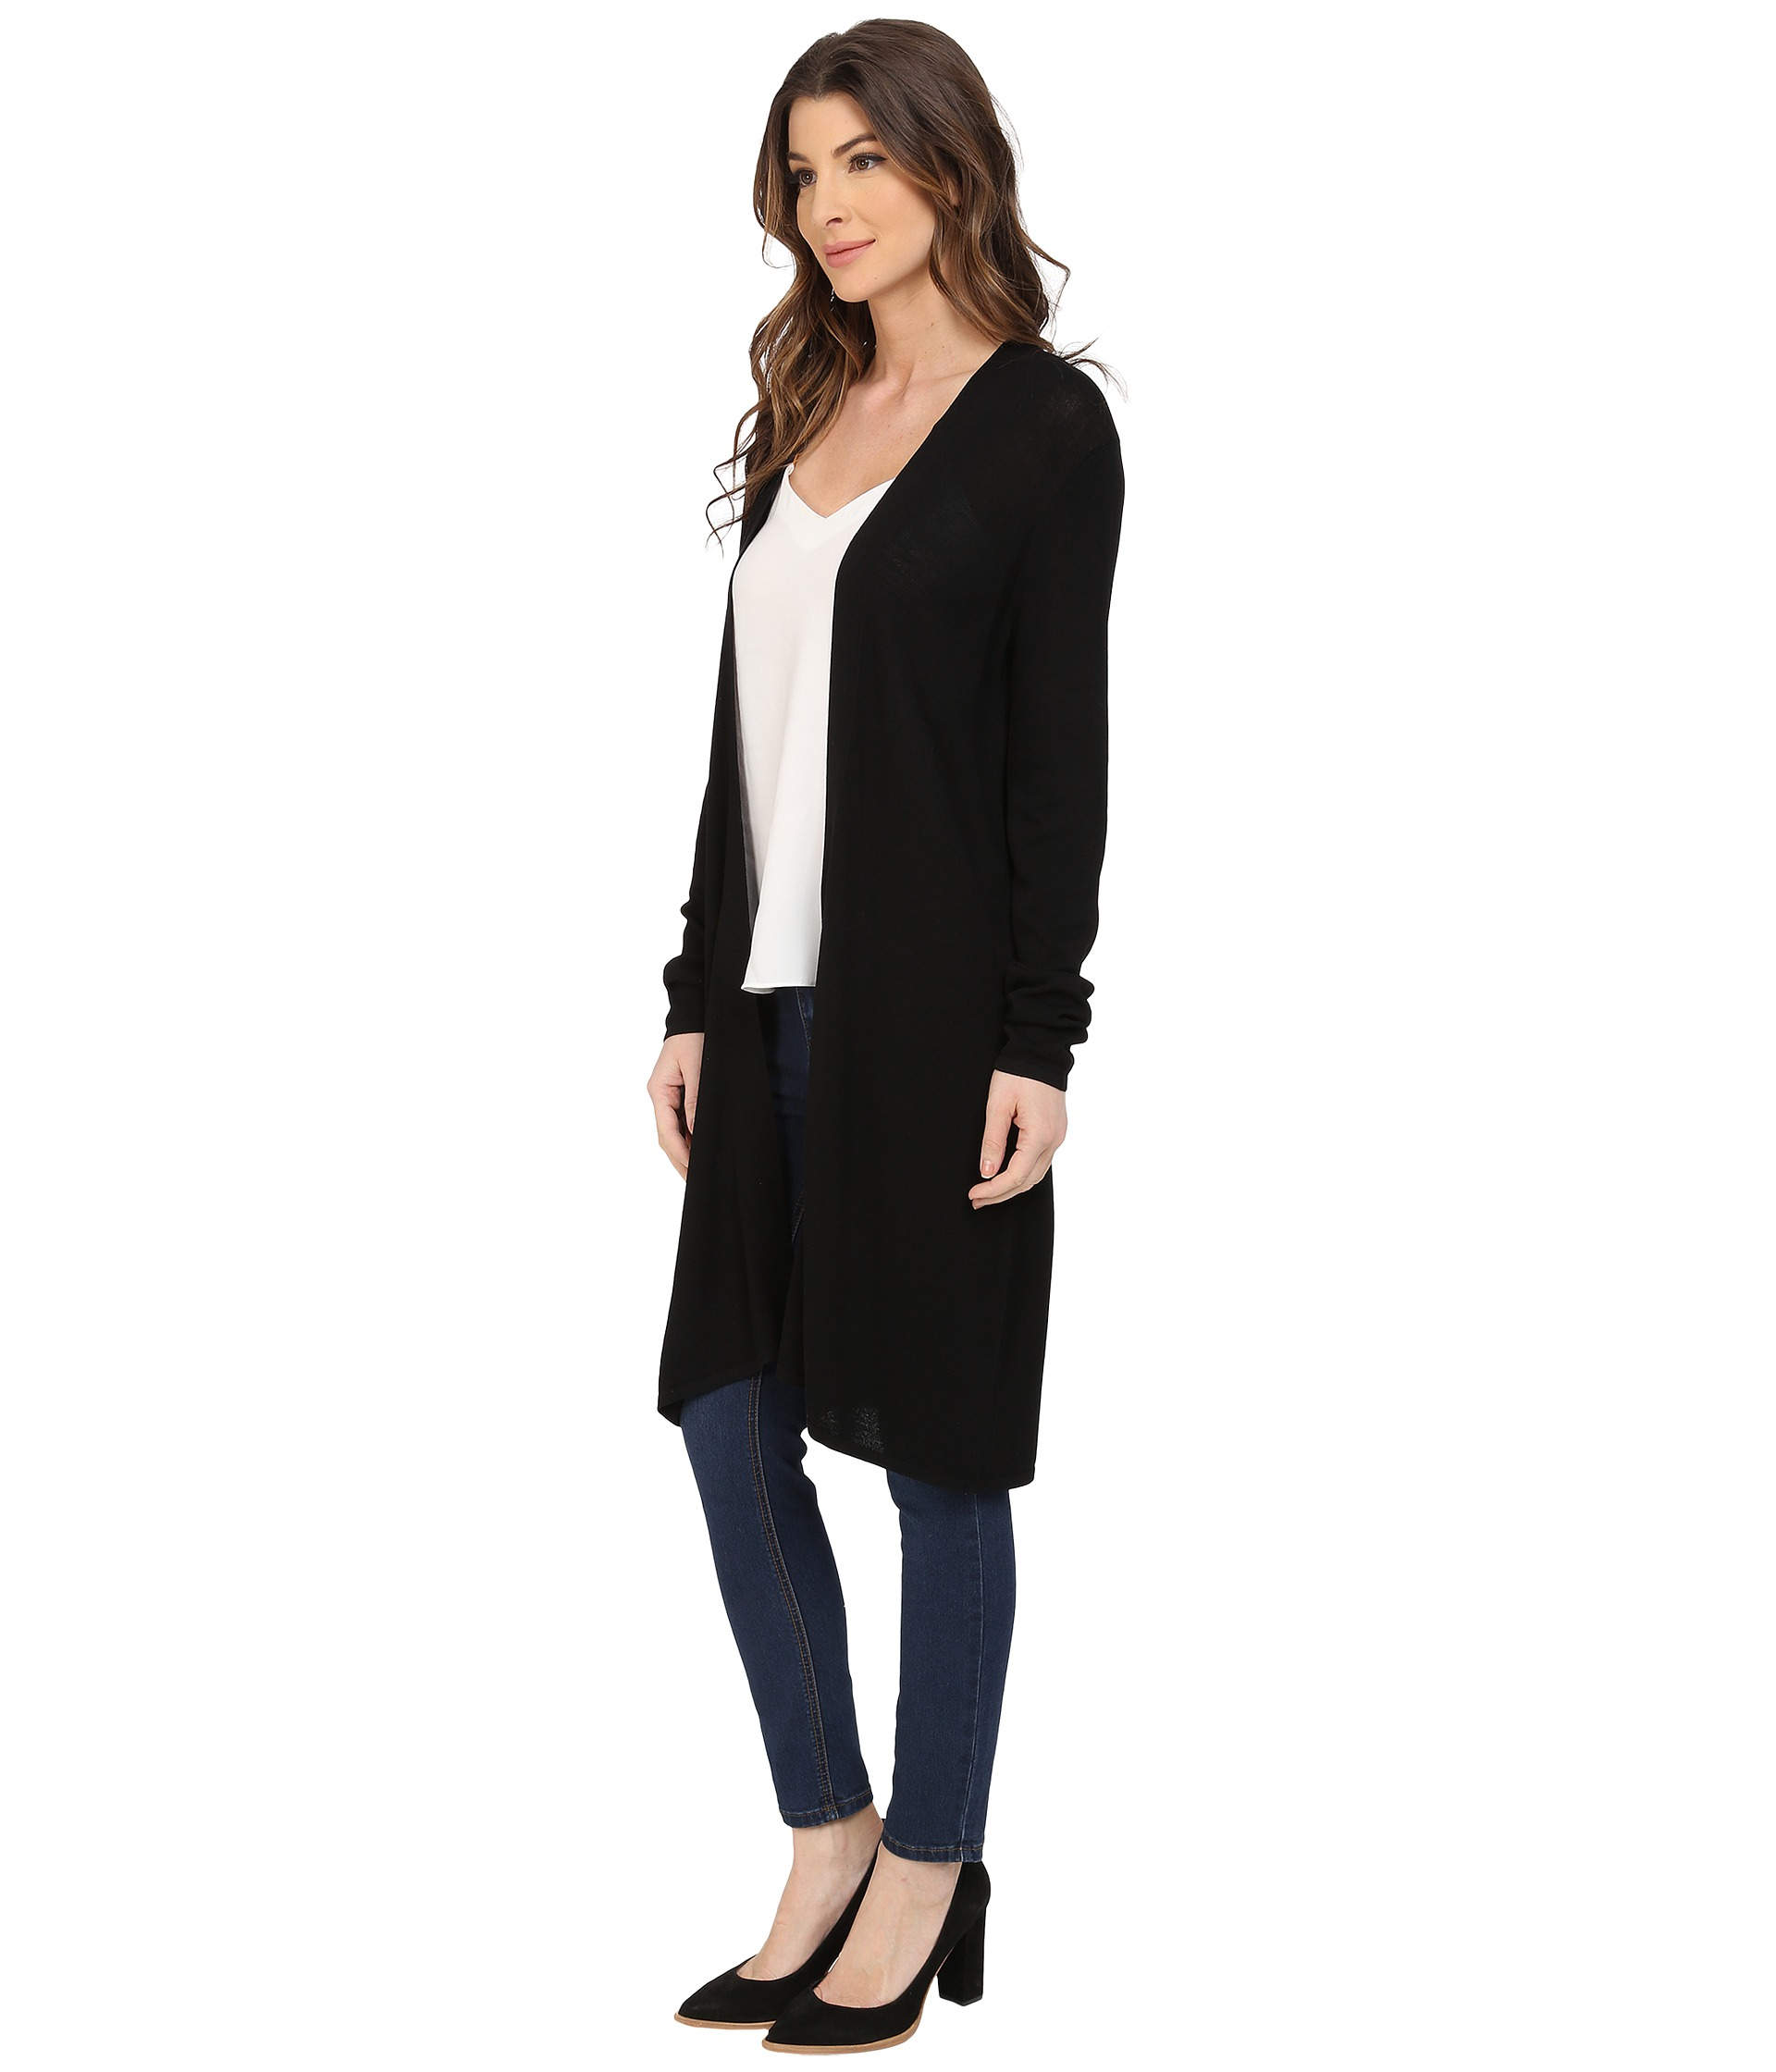 Nydj Duster Cardigan in Black | Lyst